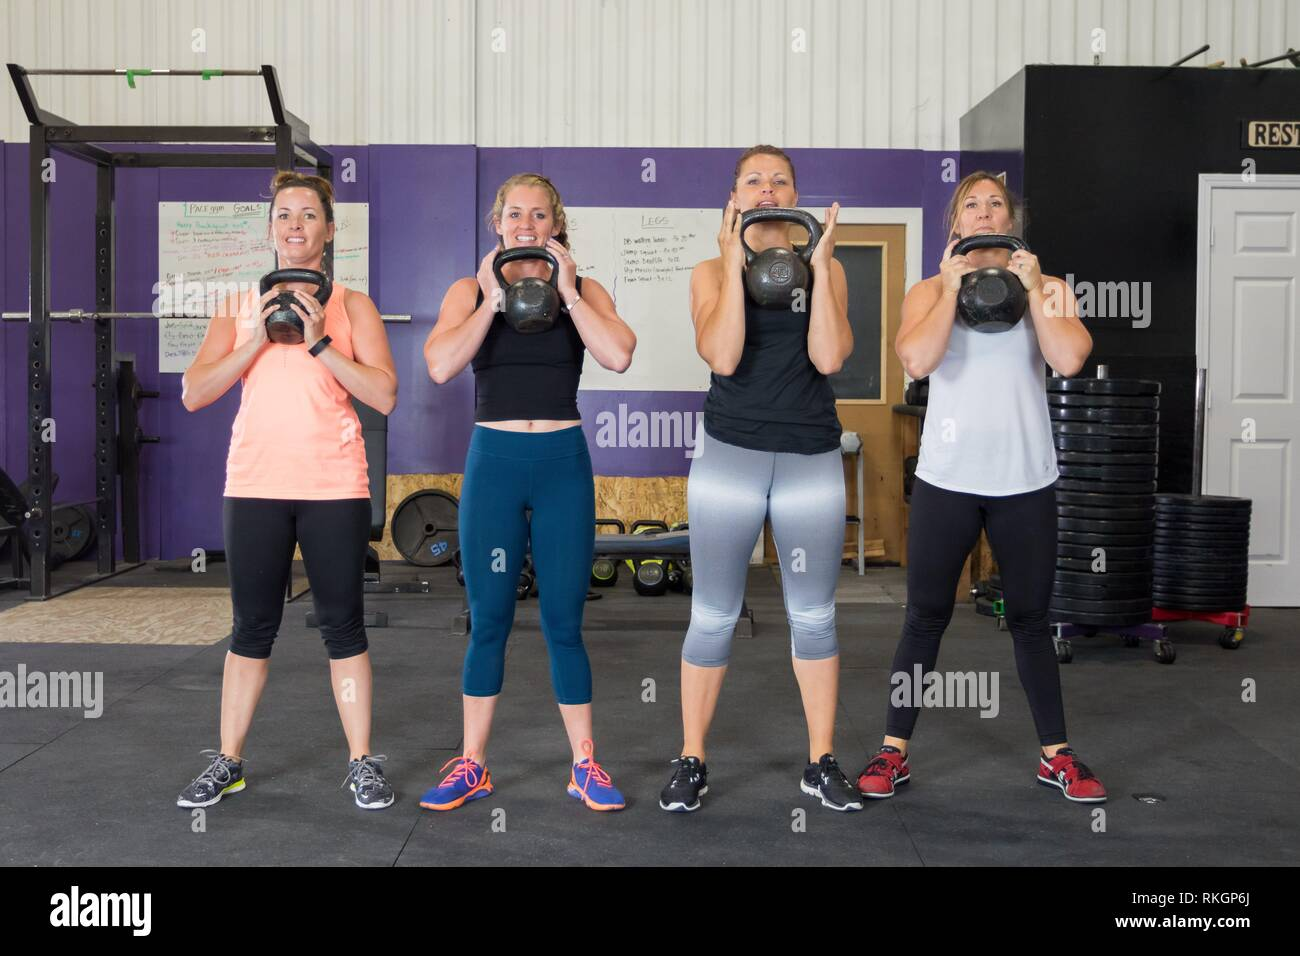 Four girls with kettle bells doing a workout together at a crossfit gym. - Stock Image